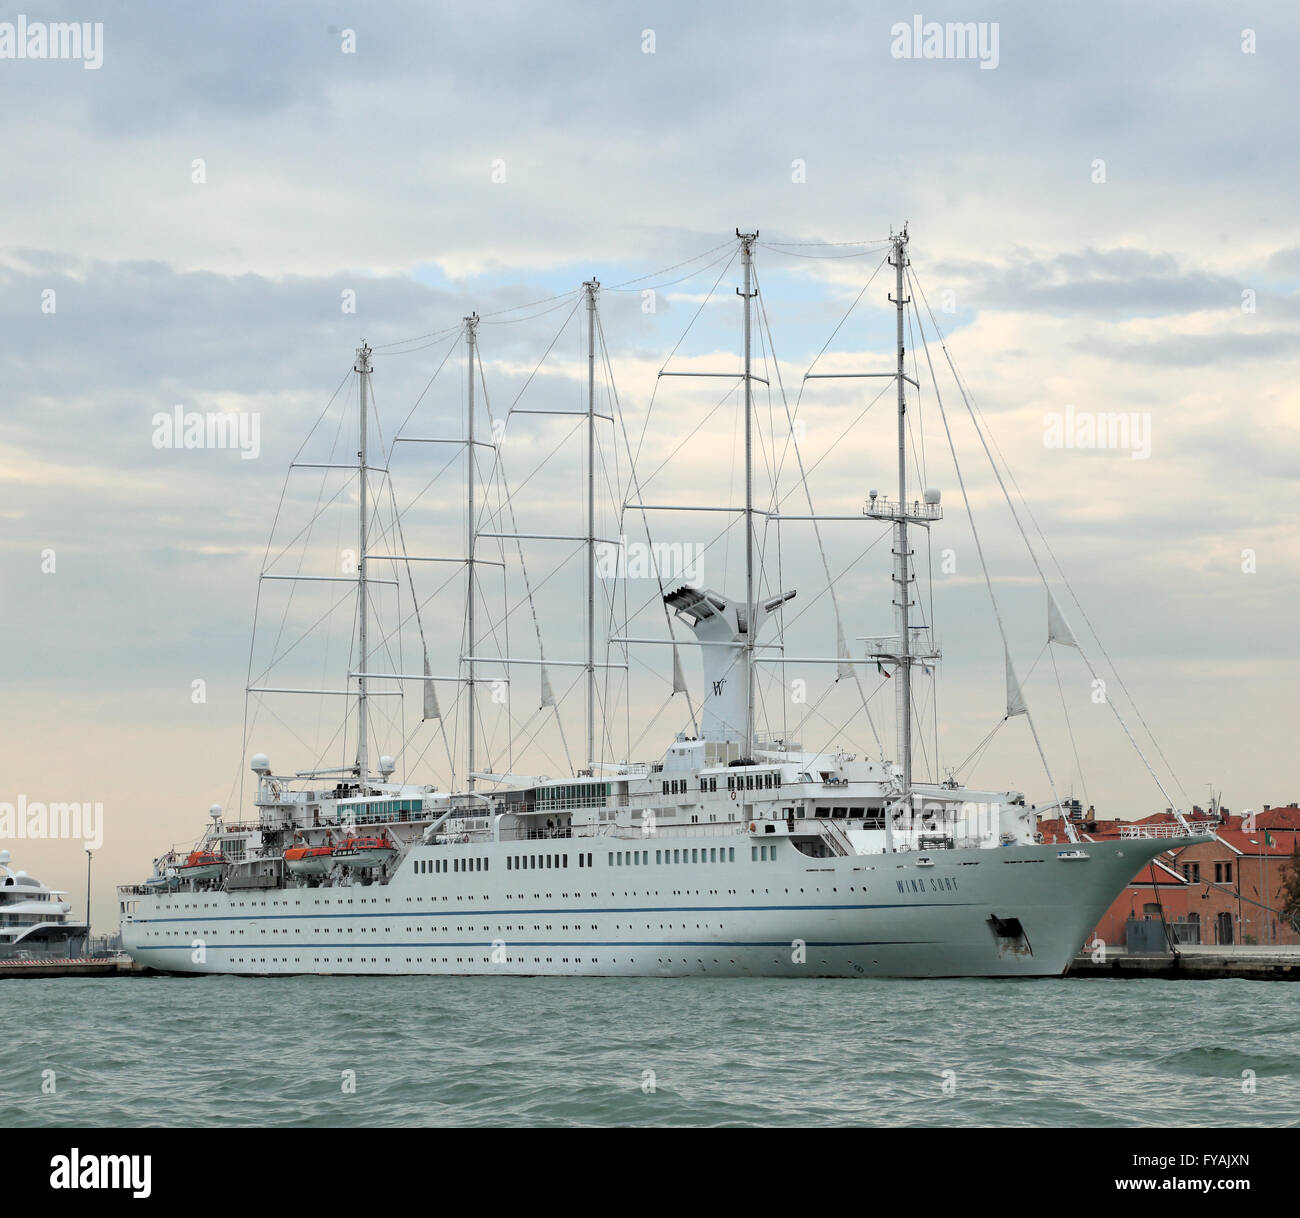 Sailing cruise ship Wind Surf, IMO 8700785, one of the largest sailing vessels in the world. - Stock Image